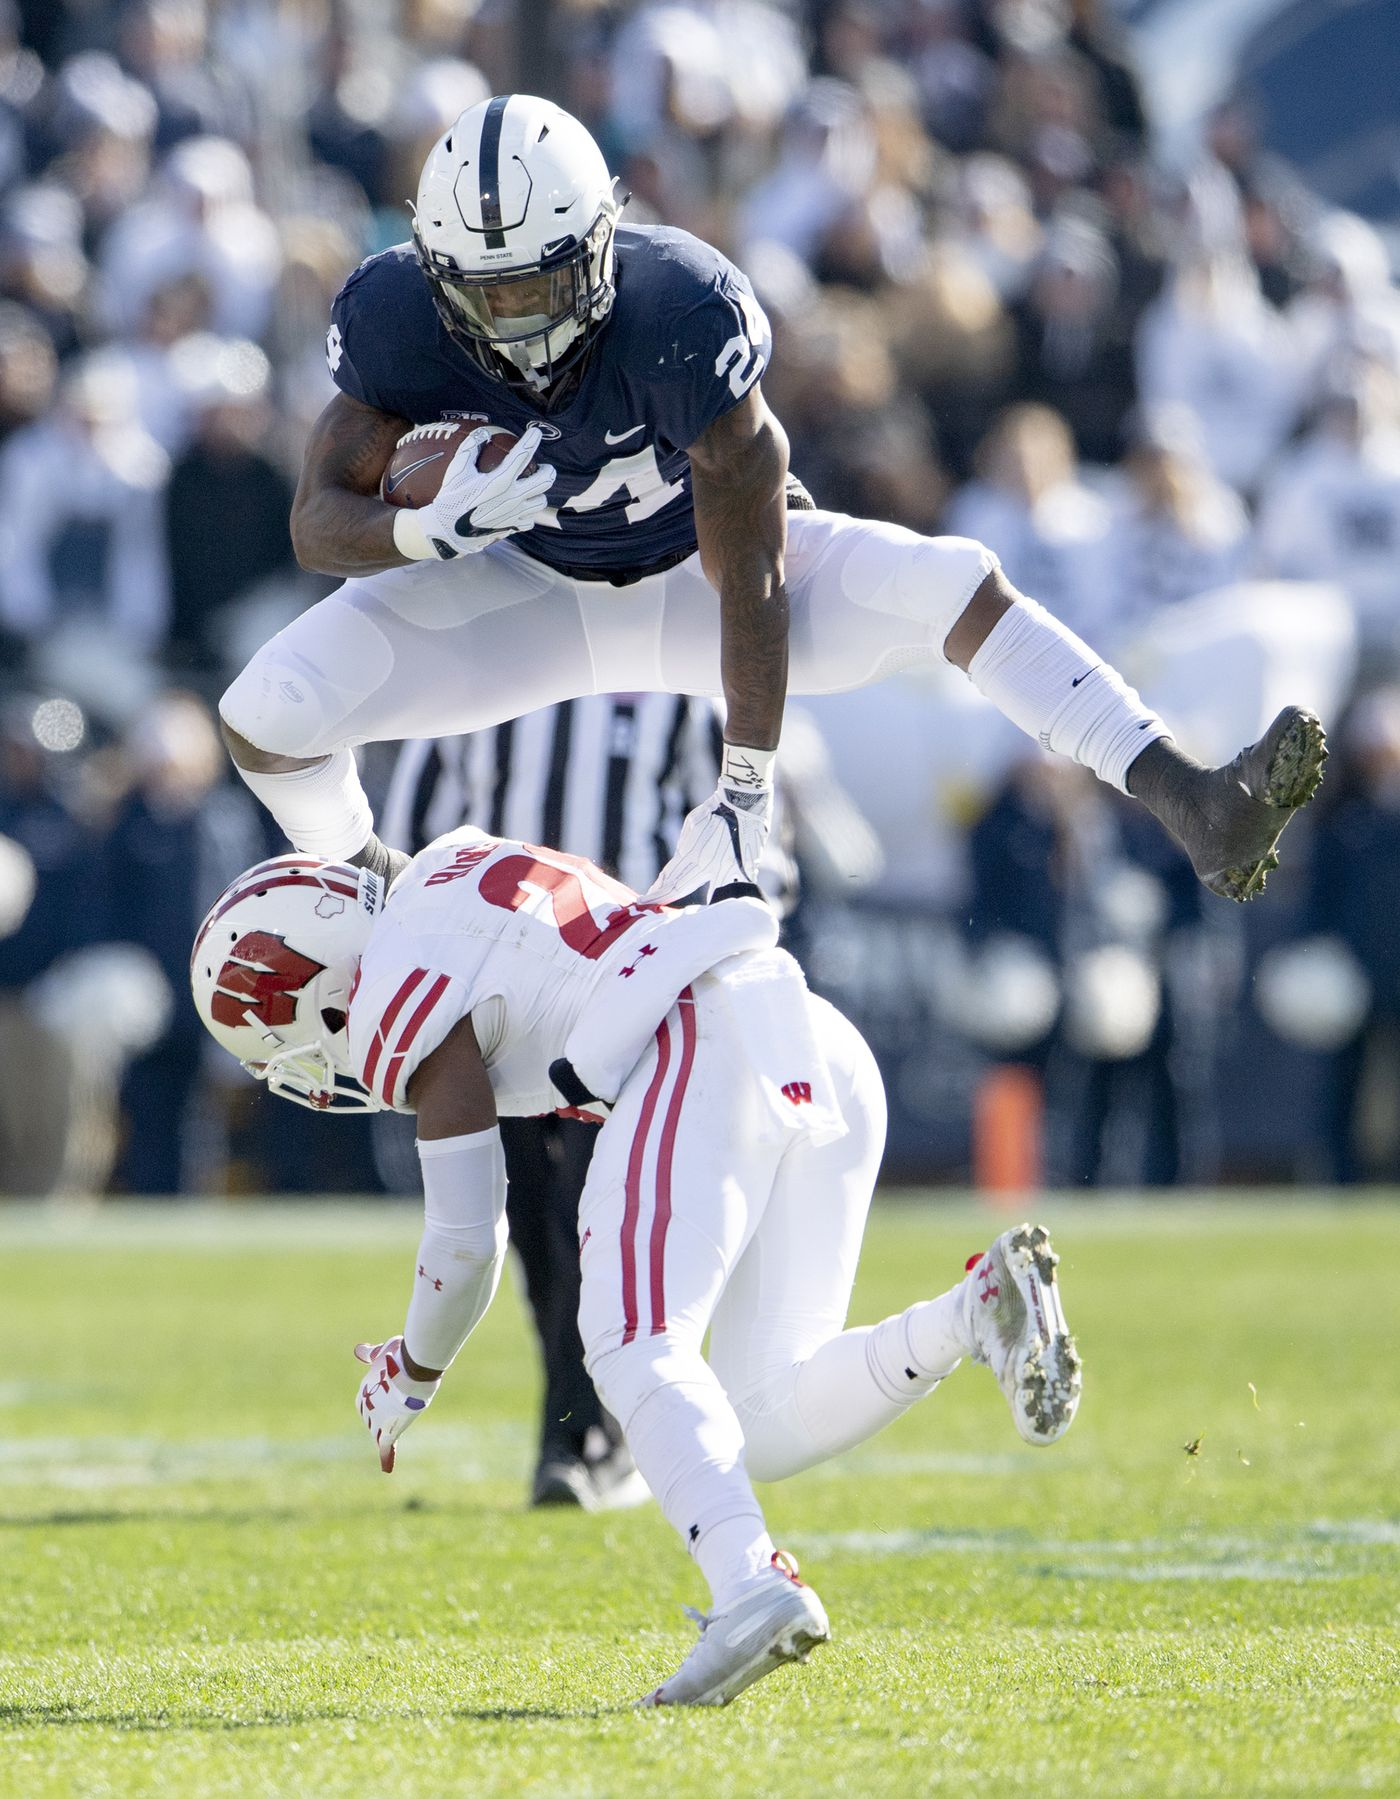 Penn State running back Miles Sanders has become a leader on and off the field for Nittany Lions